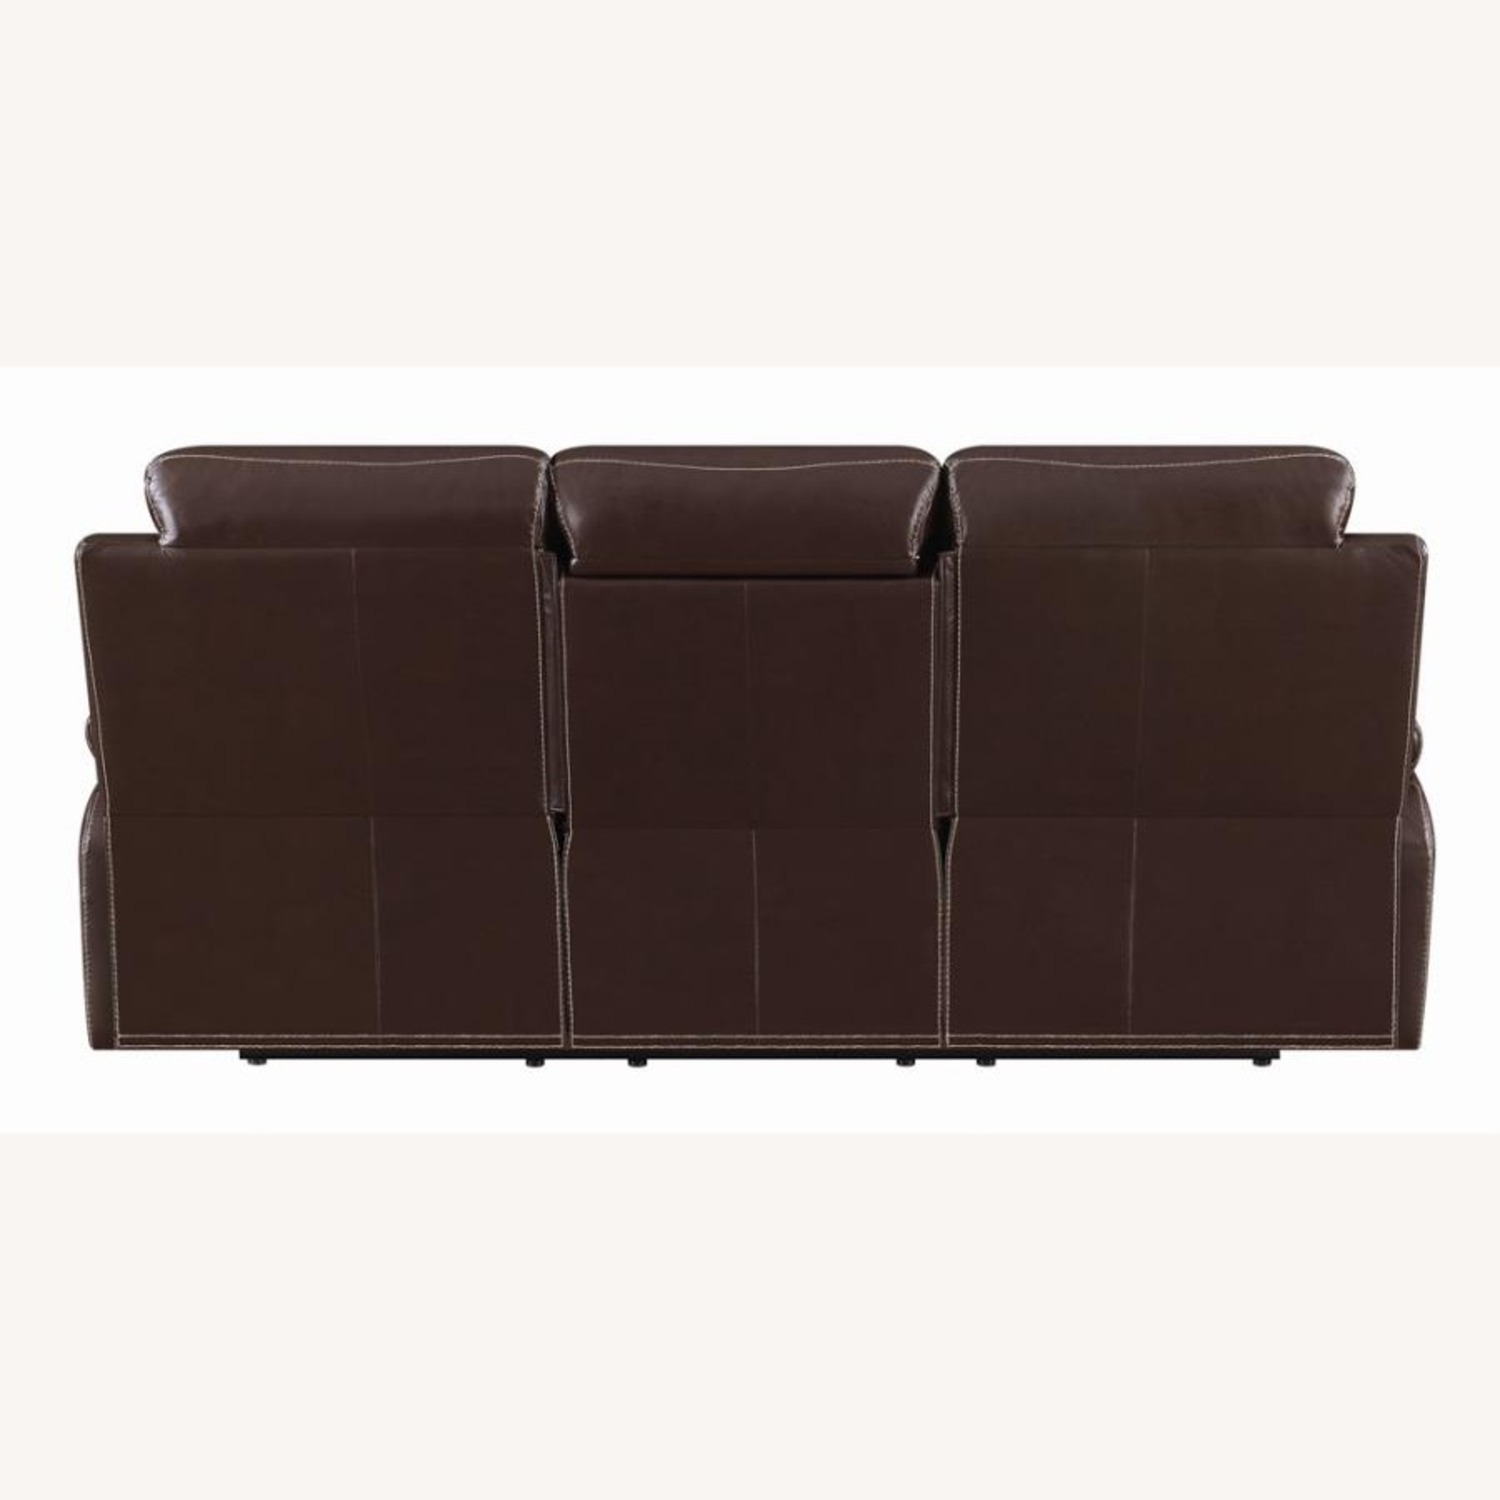 Motion Sofa In Chestnut Leather W/ Storage Drawer - image-3